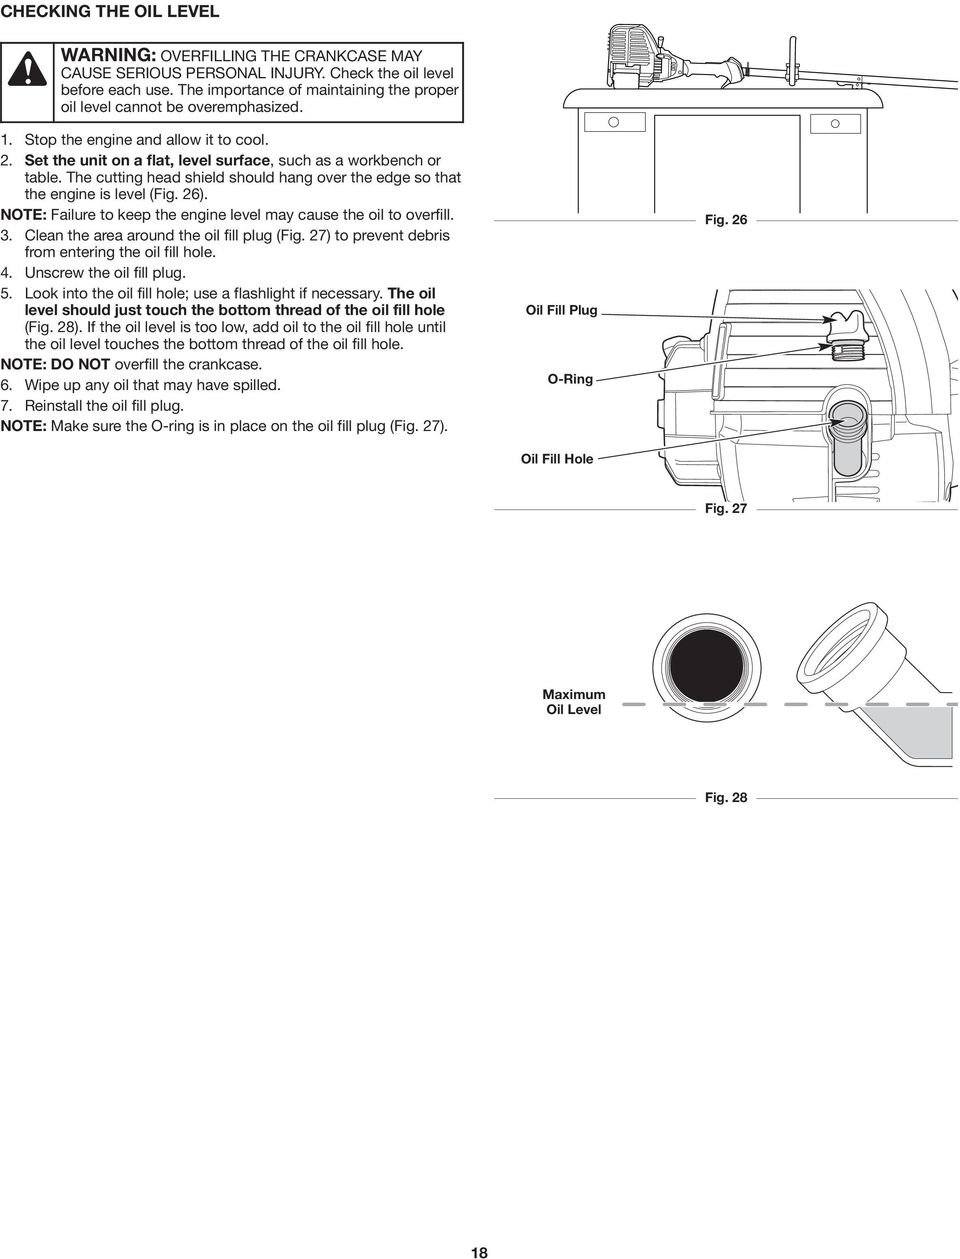 hight resolution of the cutting head shield should hang over the edge so that the engine is level